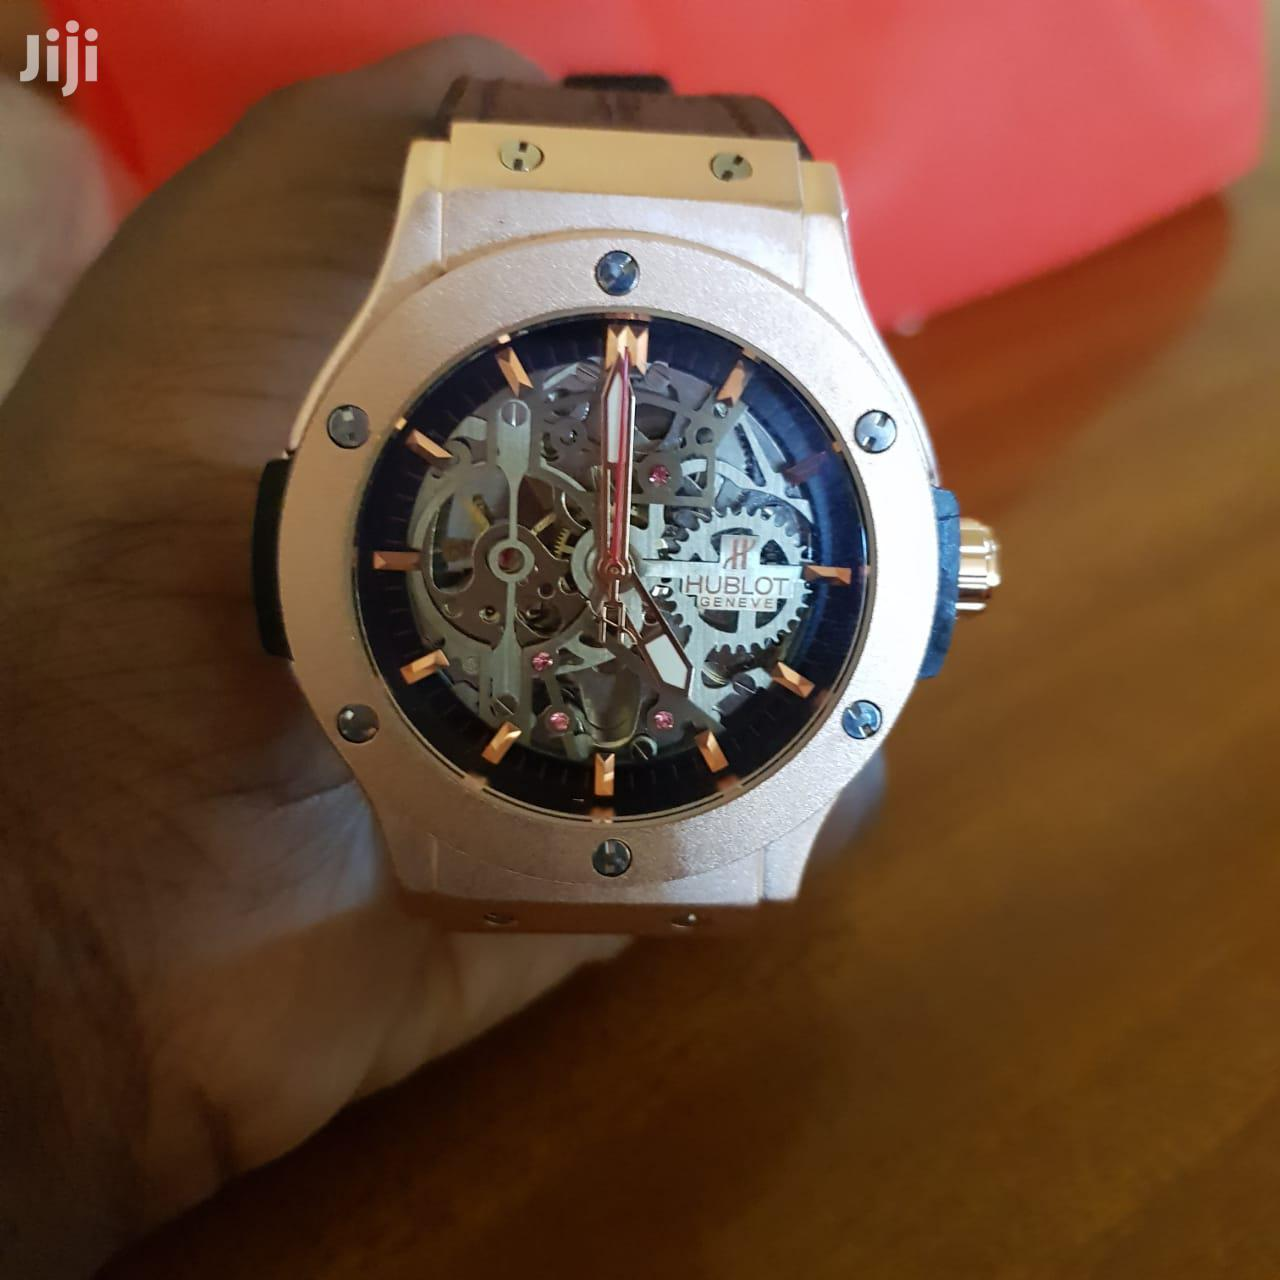 Hublot Rose Gold And Brown Leather Strap